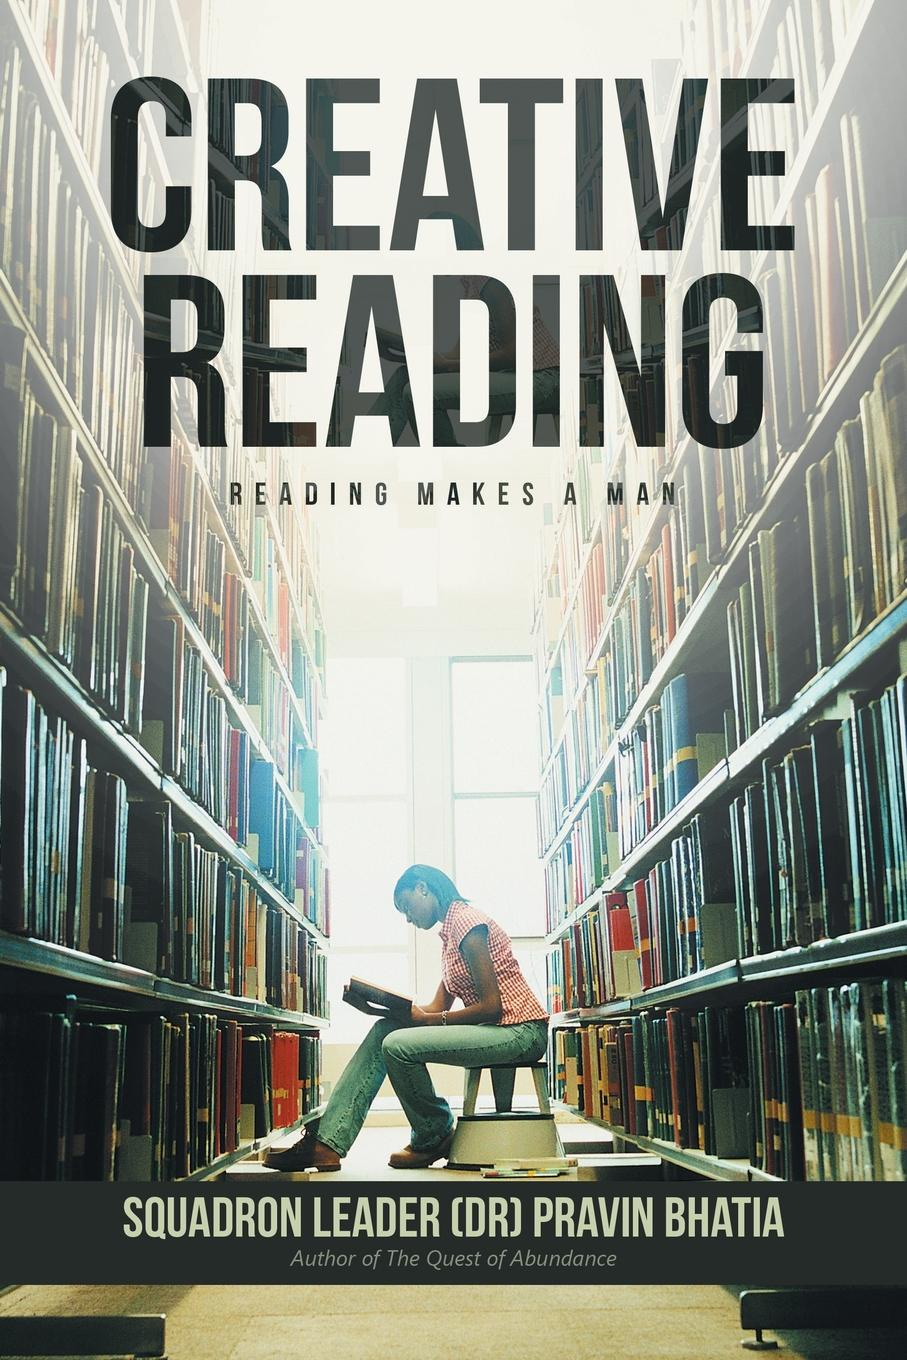 Squadron Leader (DR) Pravin Bhatia Creative Reading. Reading Makes a Man should standardized reading tests be untimed